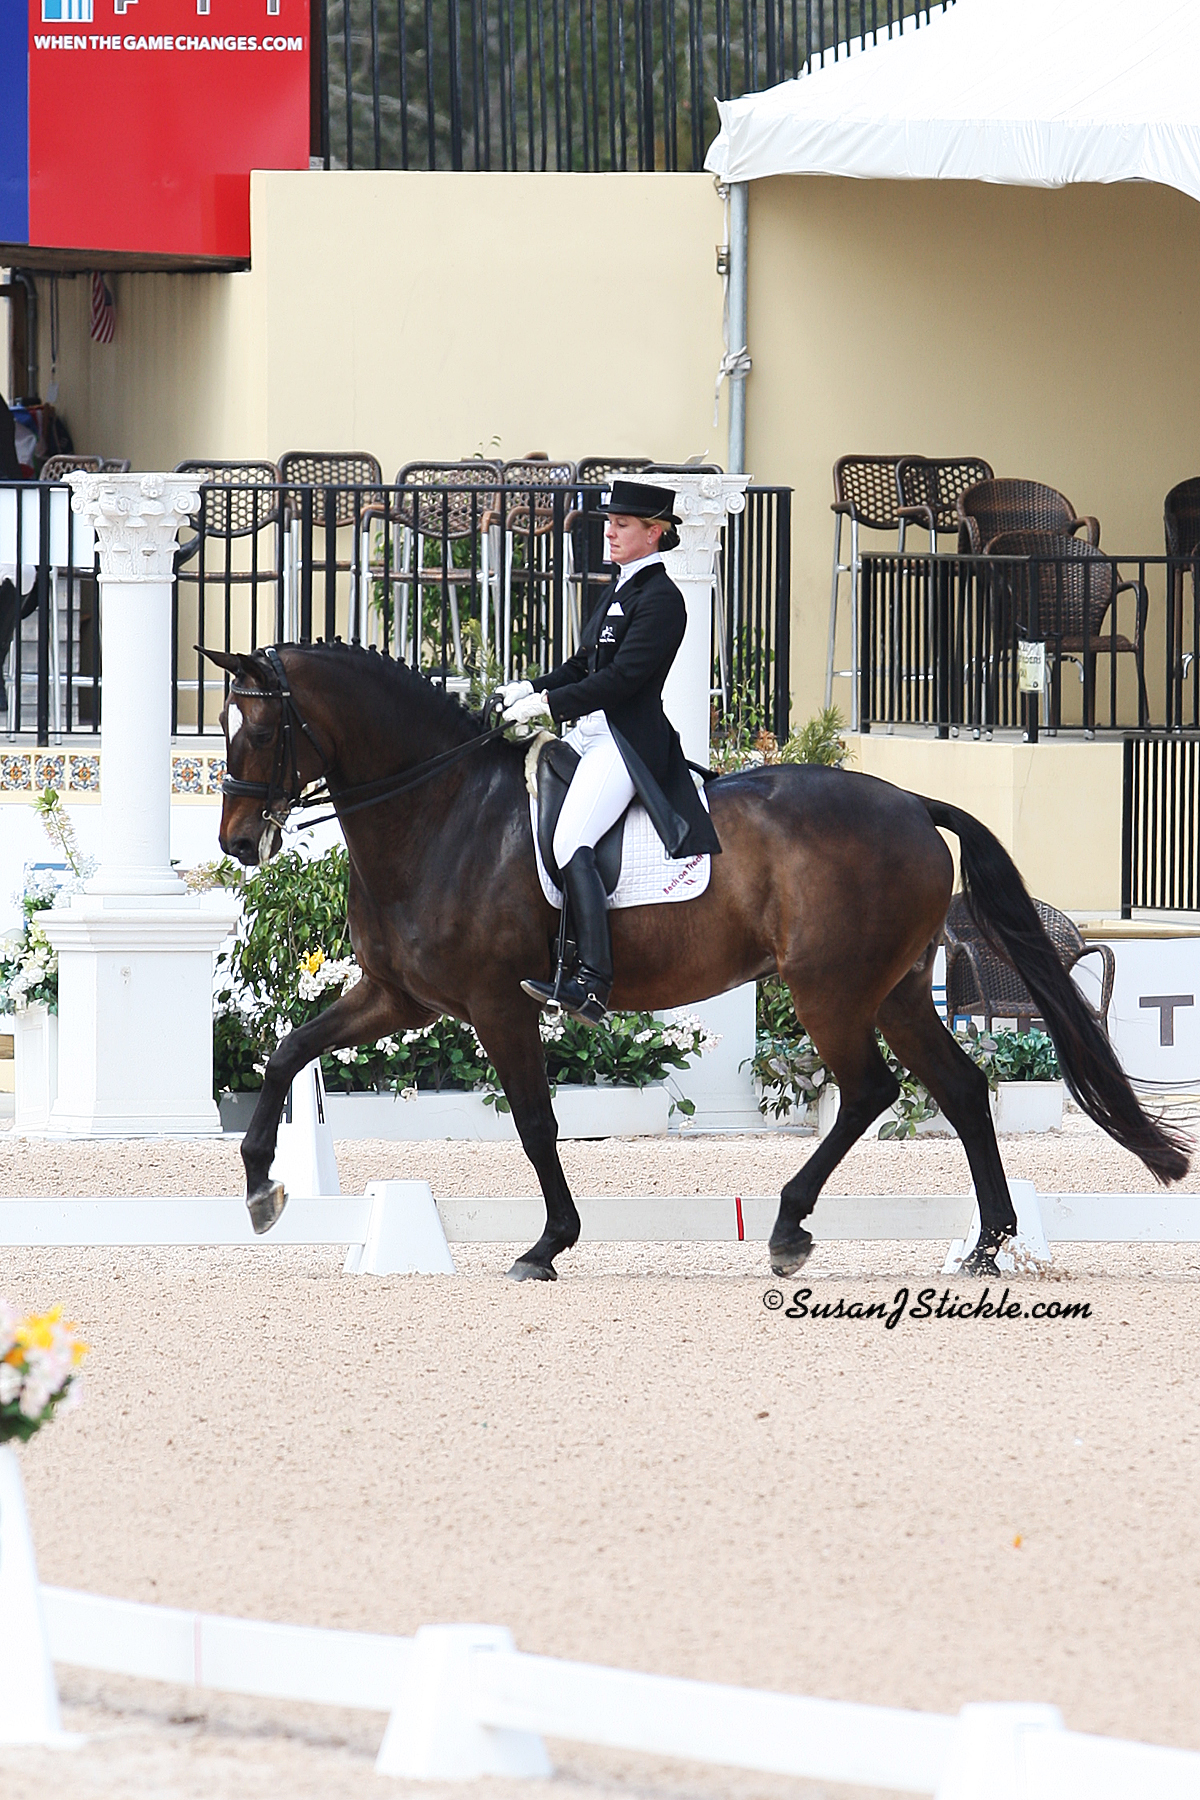 Arenus Ambassadors Lars Petersen and Melissa Taylor on Chicco performed a Pas de Deux at the HITS-on-the-Hudson $1 Million Grand Prix in Saugerties, New York. Arenus, a premier provider of innovative health and nutritional products for pets and horses, sponsored the dressage demonstration. (Photo courtesy of Susan Stickle)